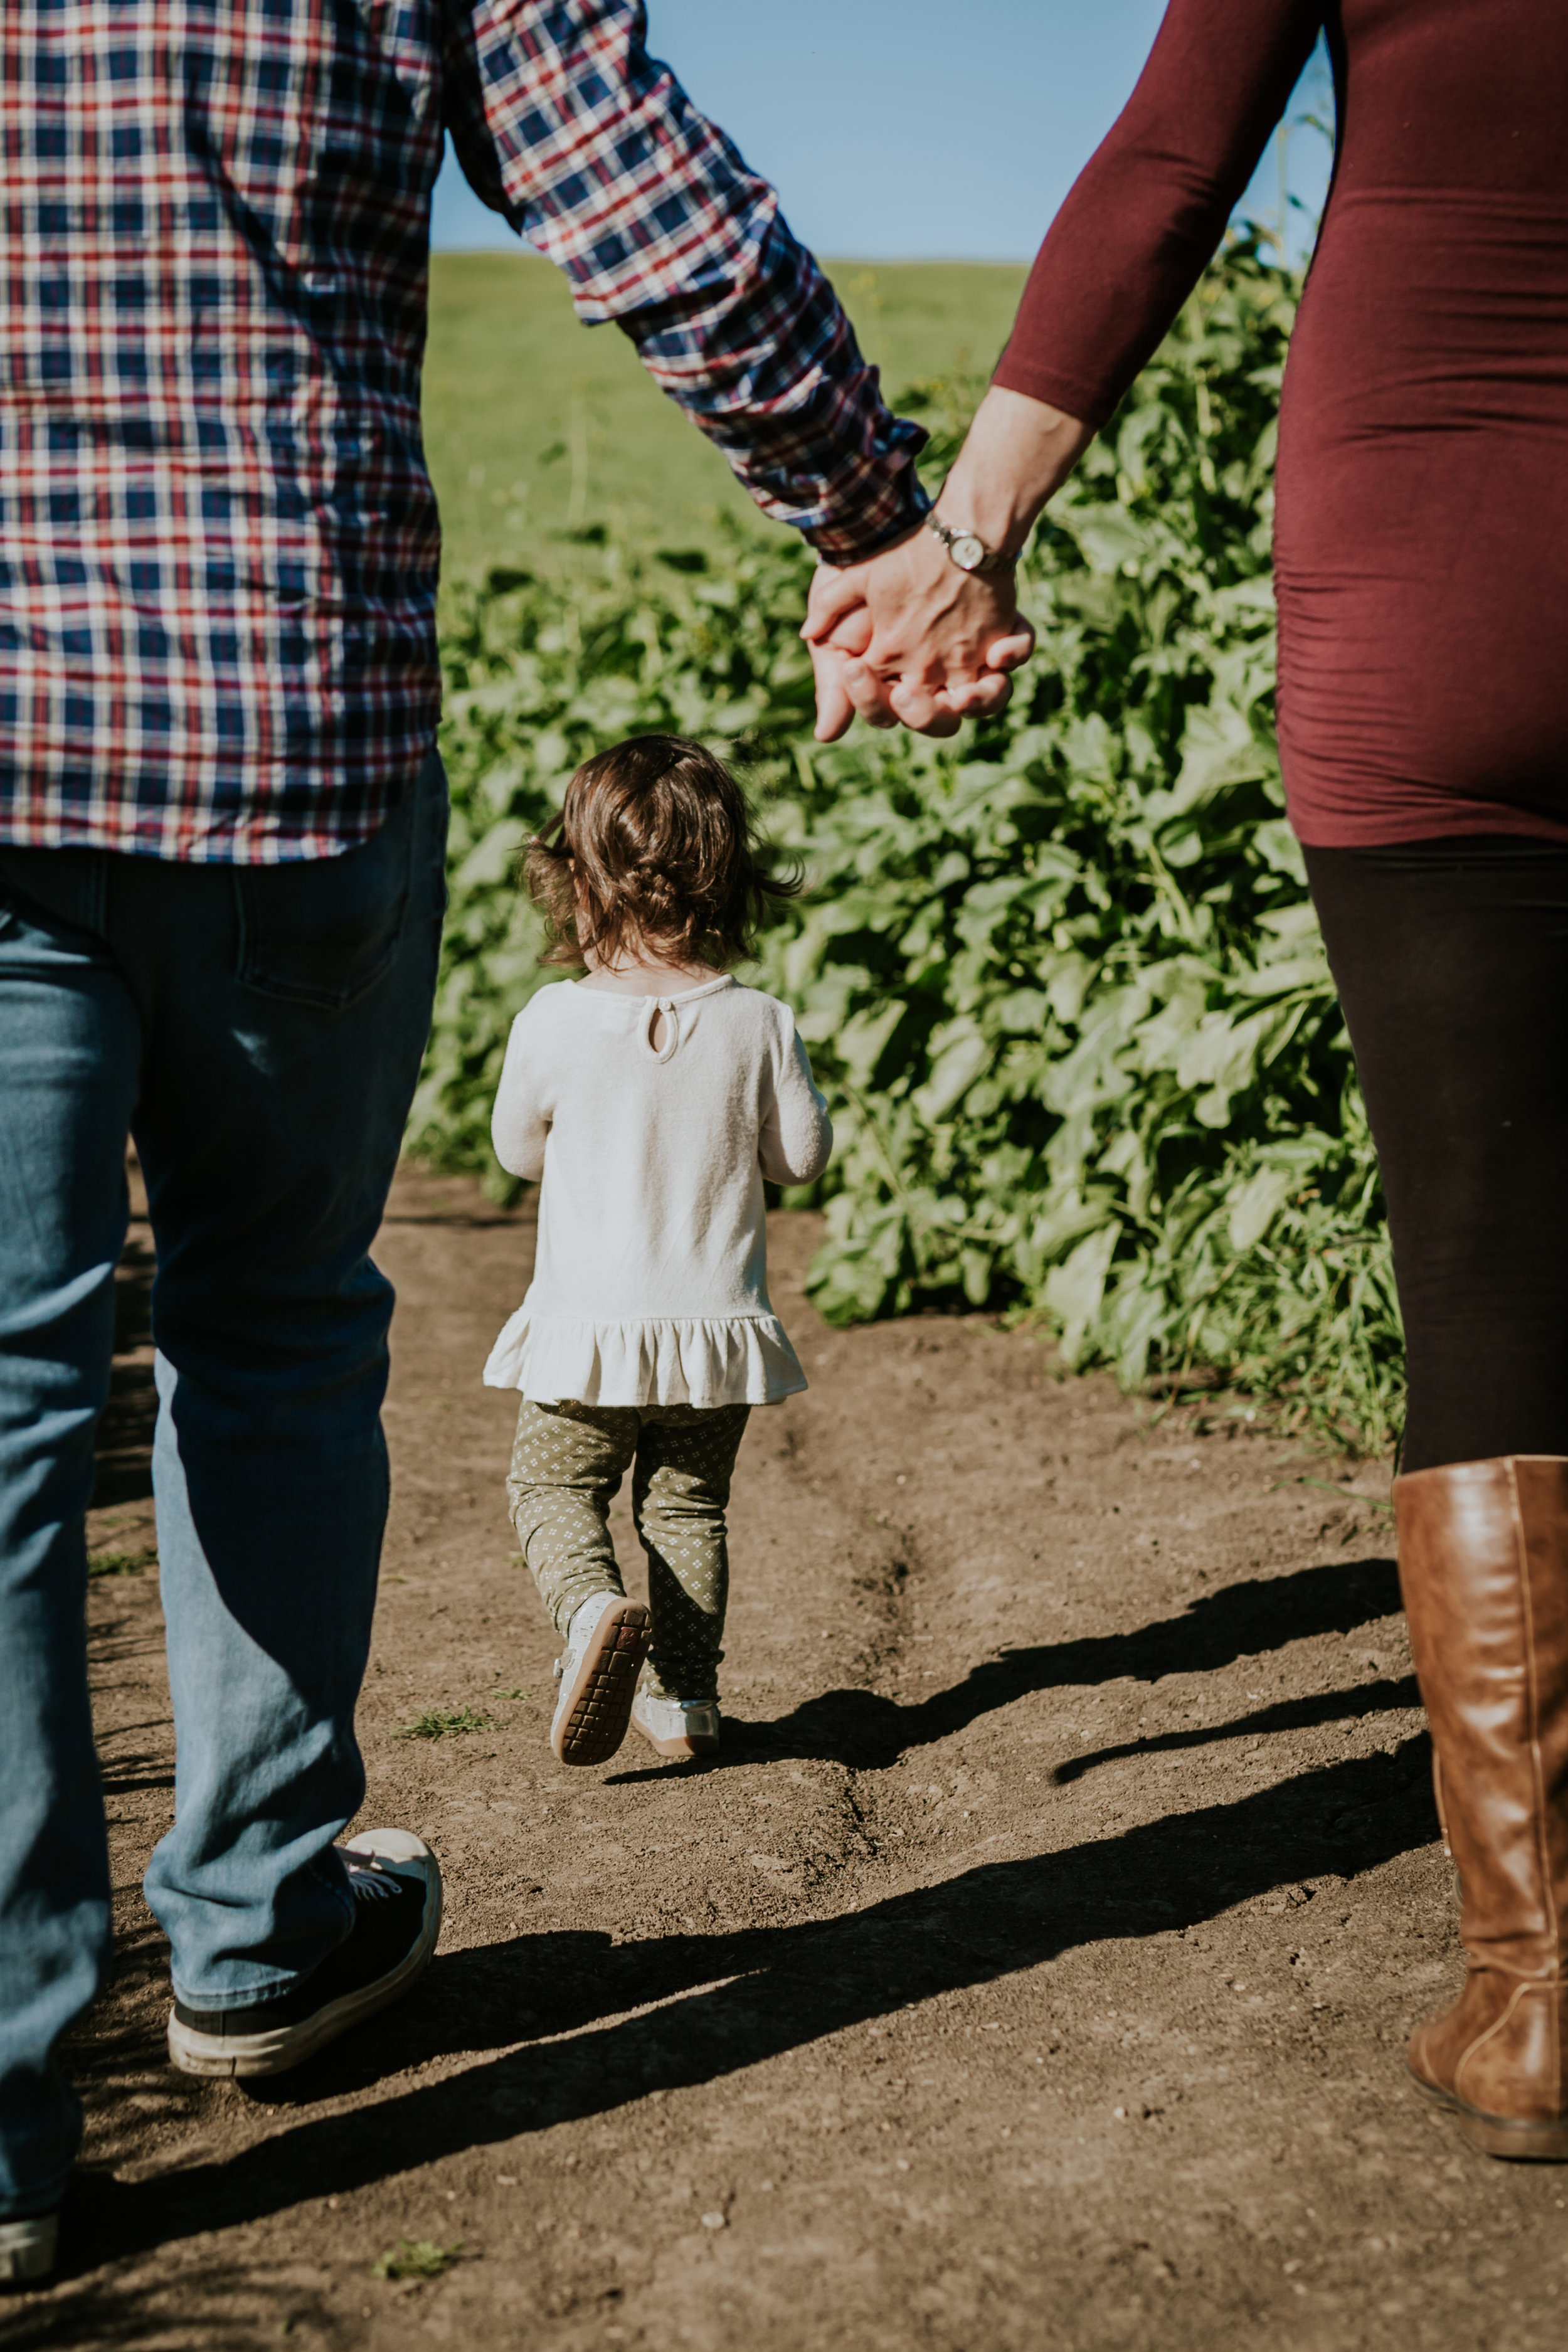 Orange County family photographer. Photo of mom and dad holding hands while young daughter walks in front along walking tracks during maternity photo shoot at Quail Hill Irvine